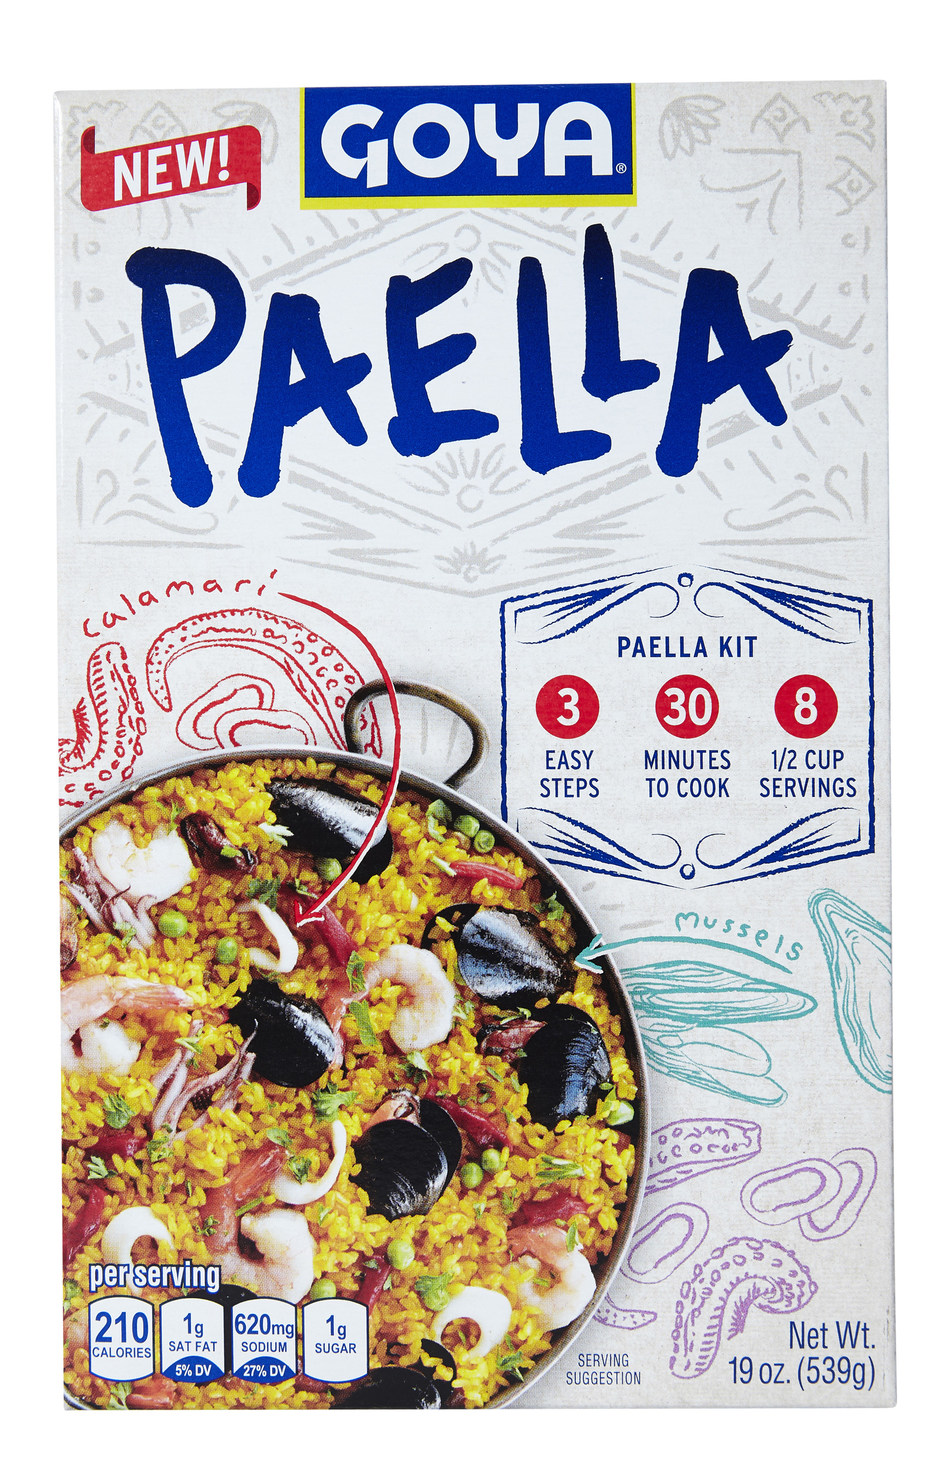 Goya Brings the Tastes of Spain to U.S. Dinner Tables With the Launch of Its New Goya Paella Rice Kit